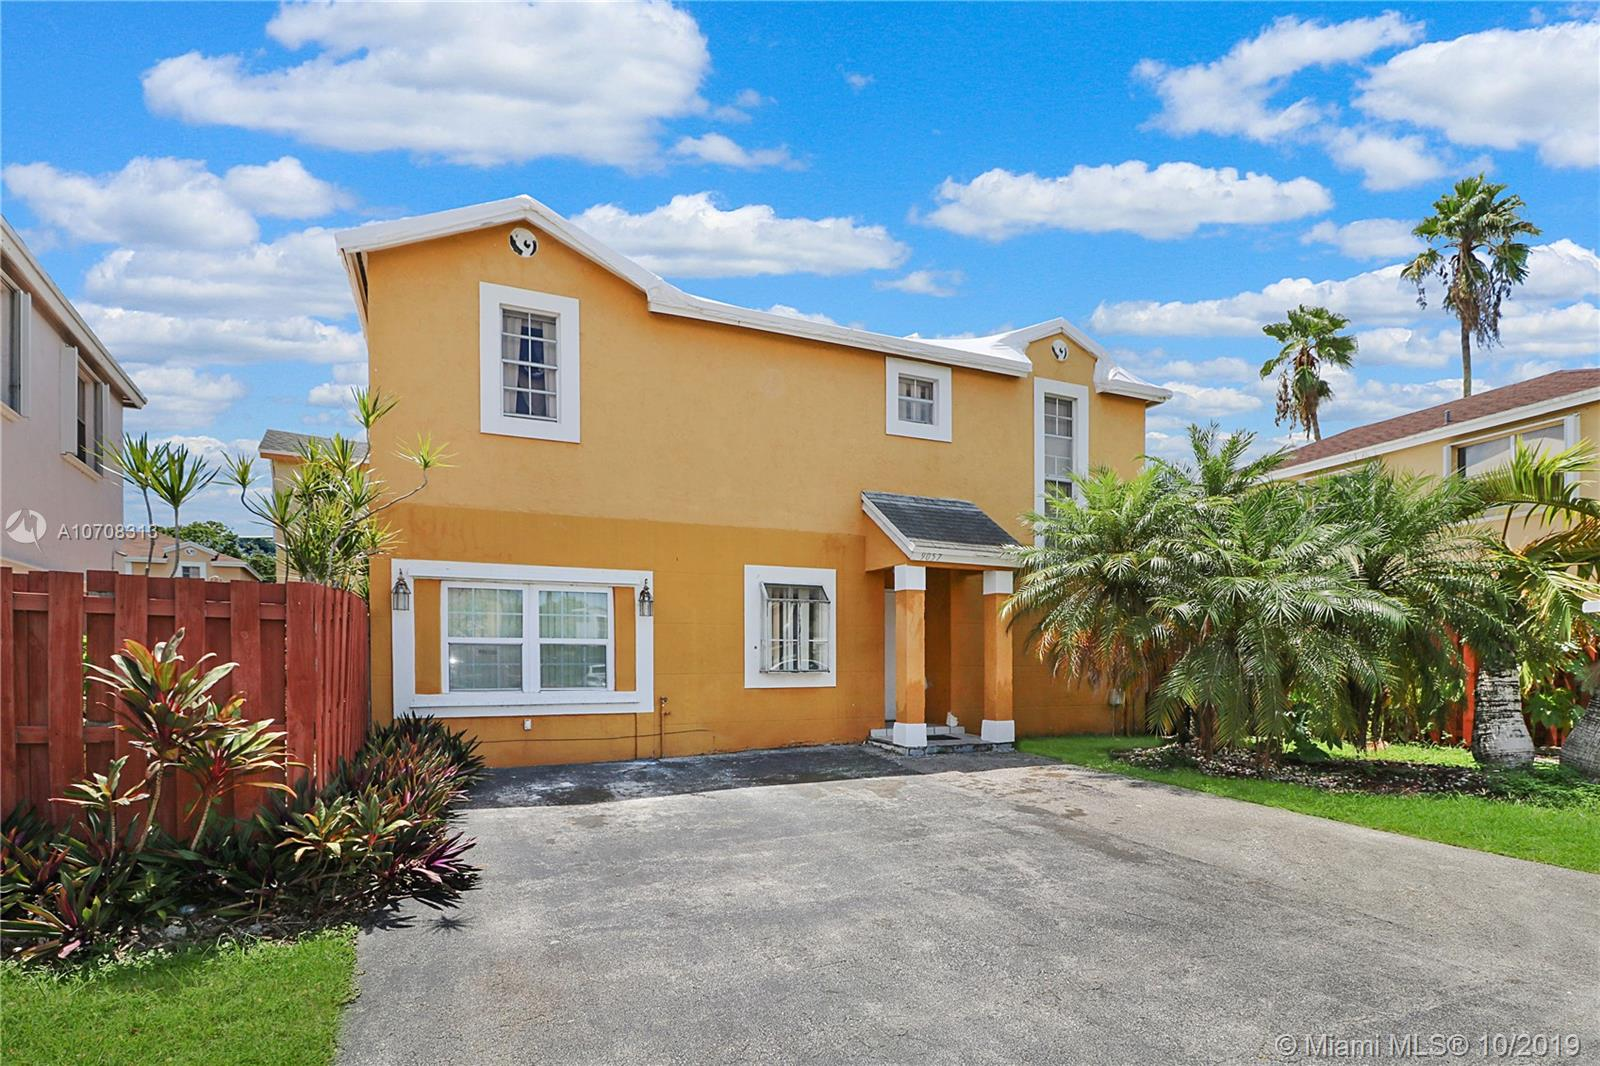 9057 SW 147th Ct, Kendall in Miami-dade County County, FL 33196 Home for Sale